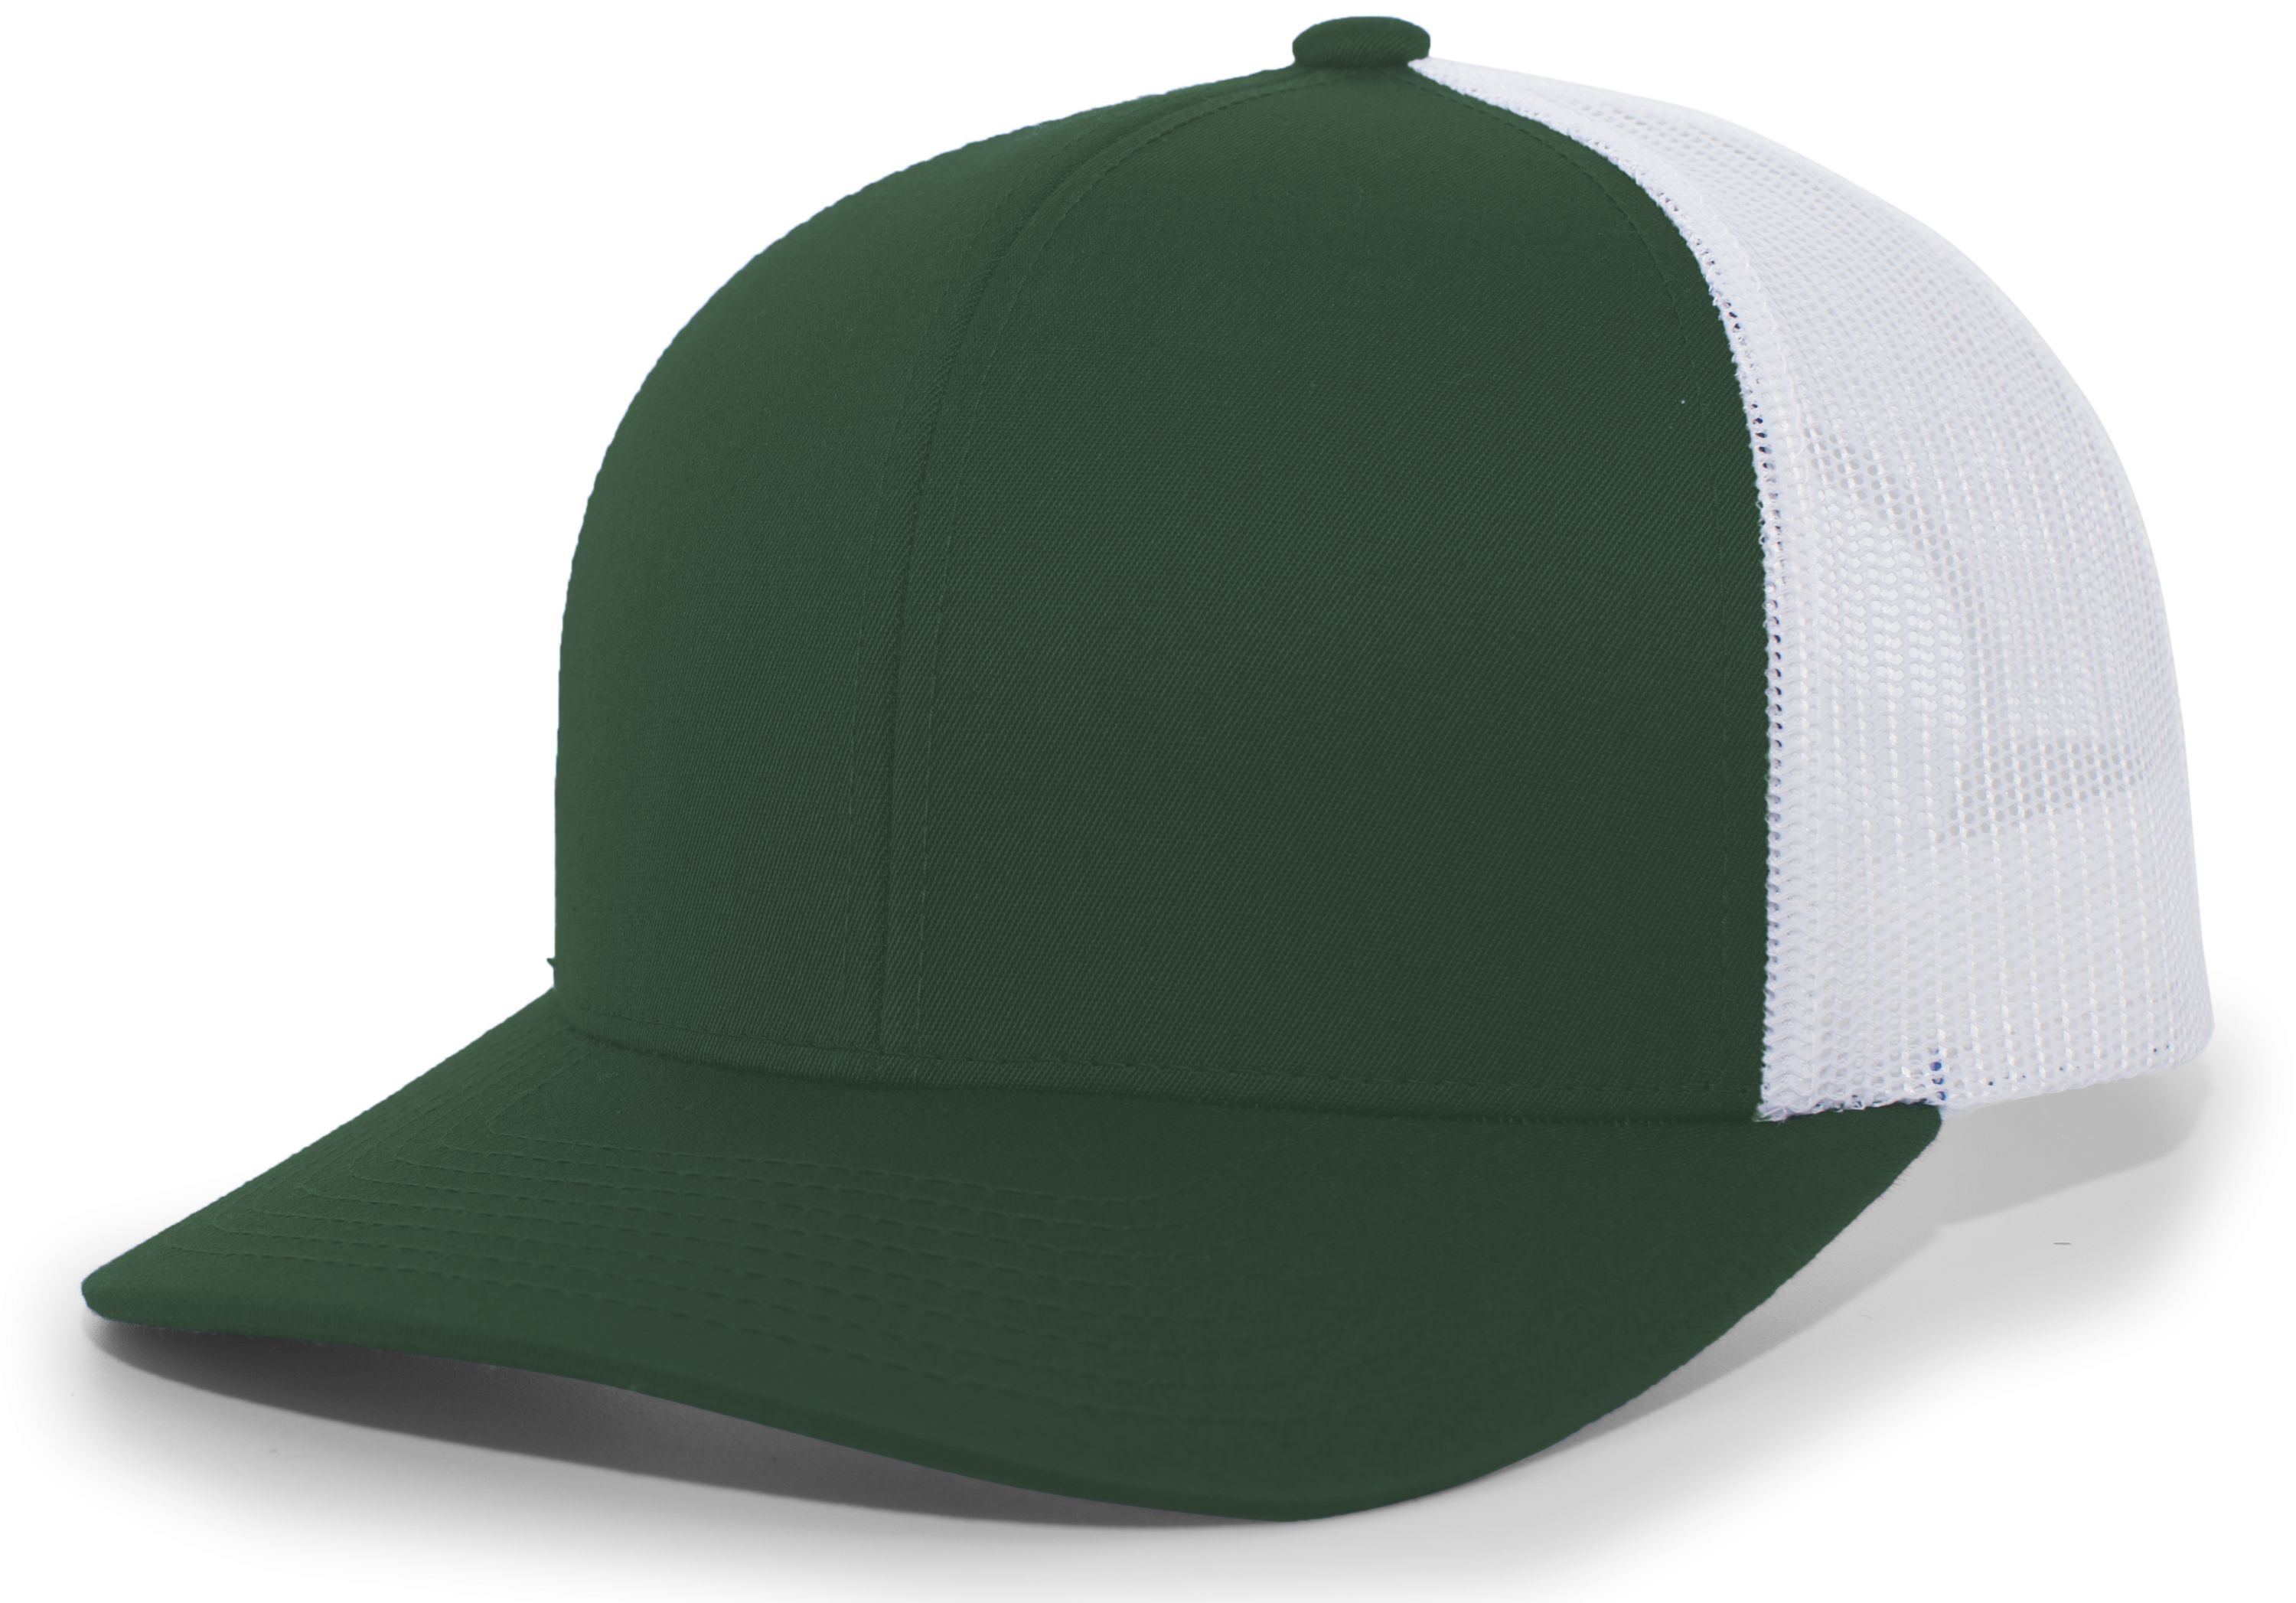 Trucker Snapback Cap - DARK GREEN/WHITE/DARK GREEN